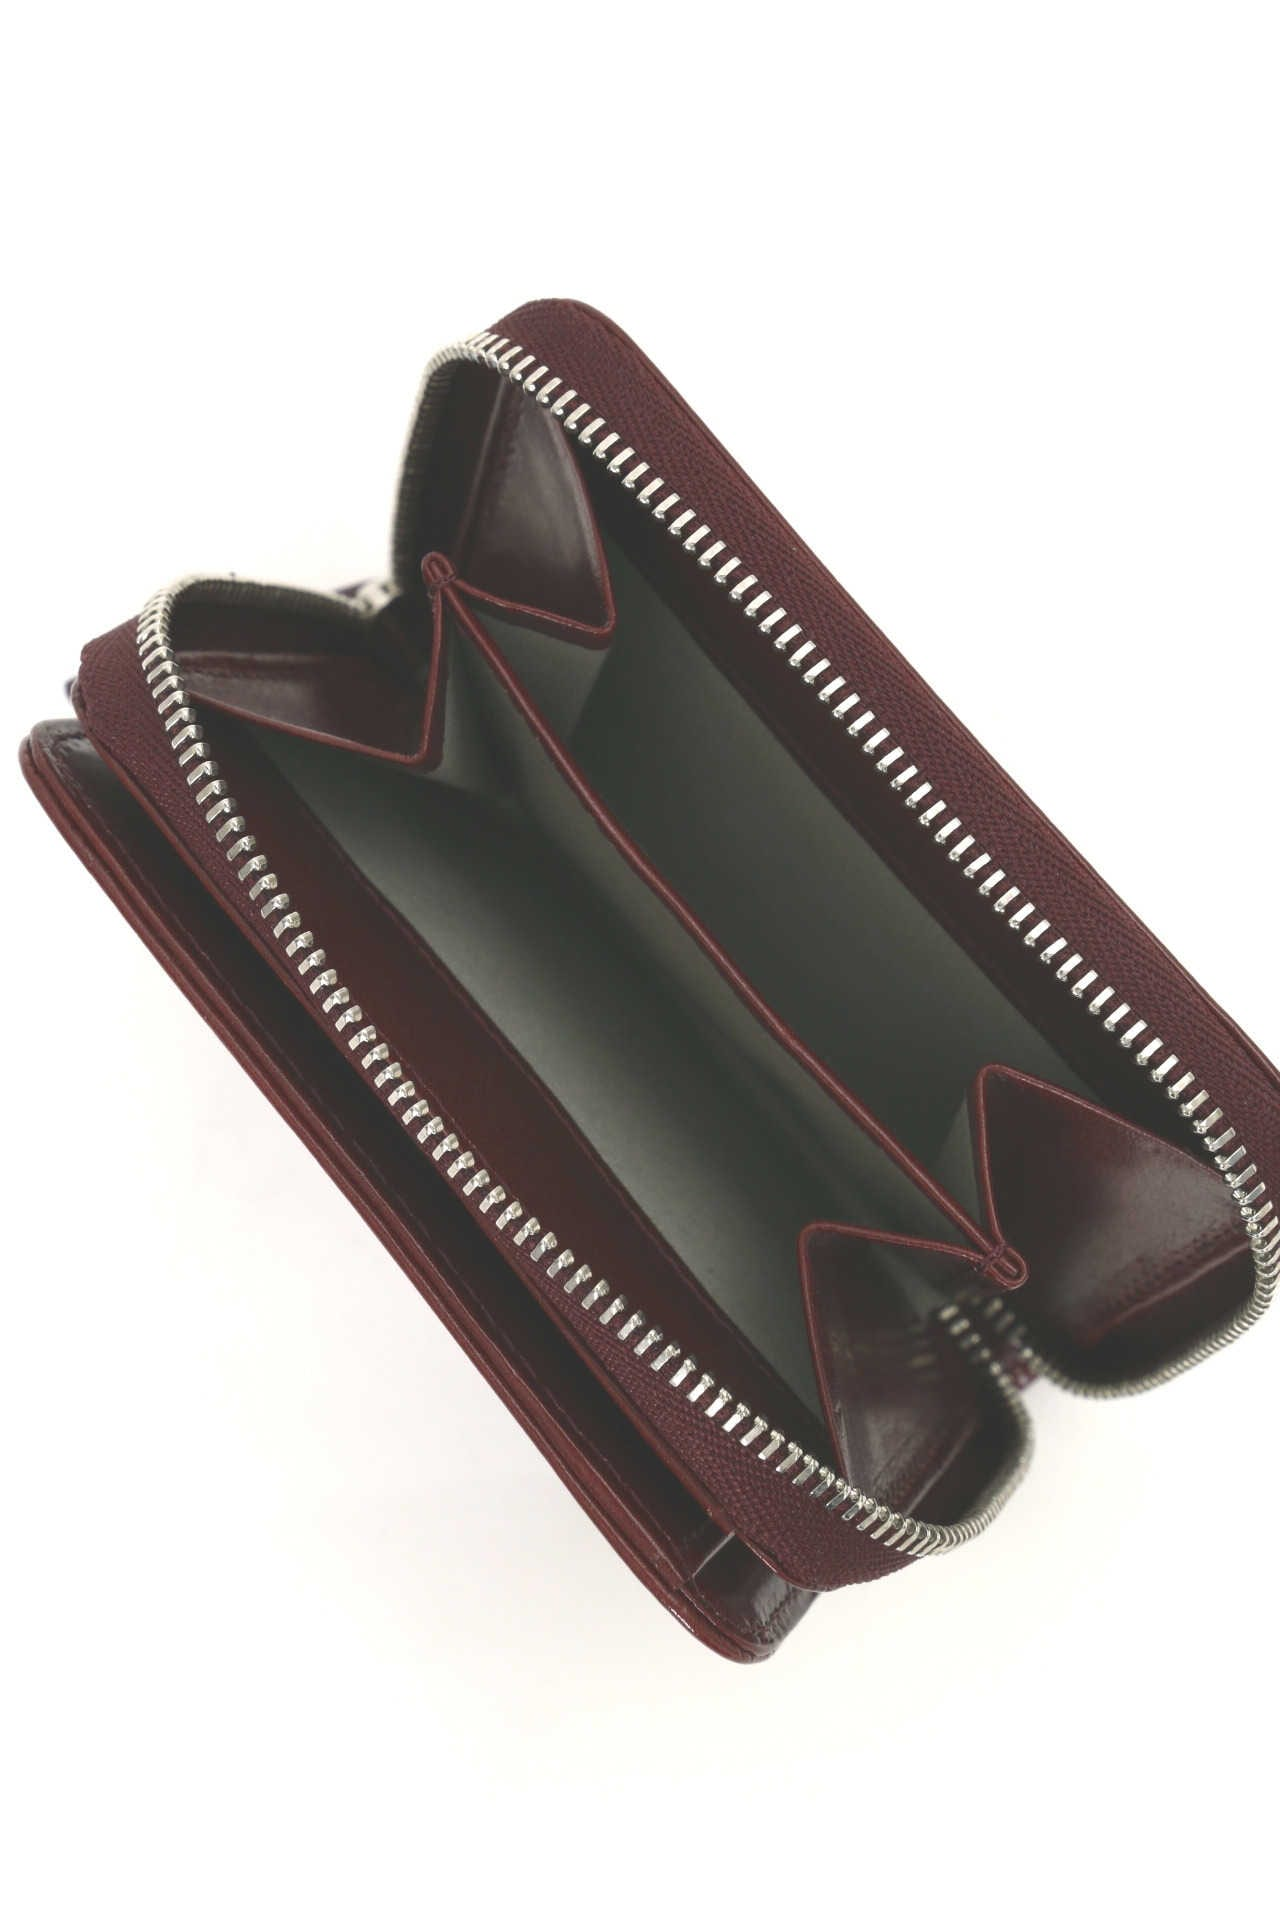 SMOOTH LEATHER WALLET5